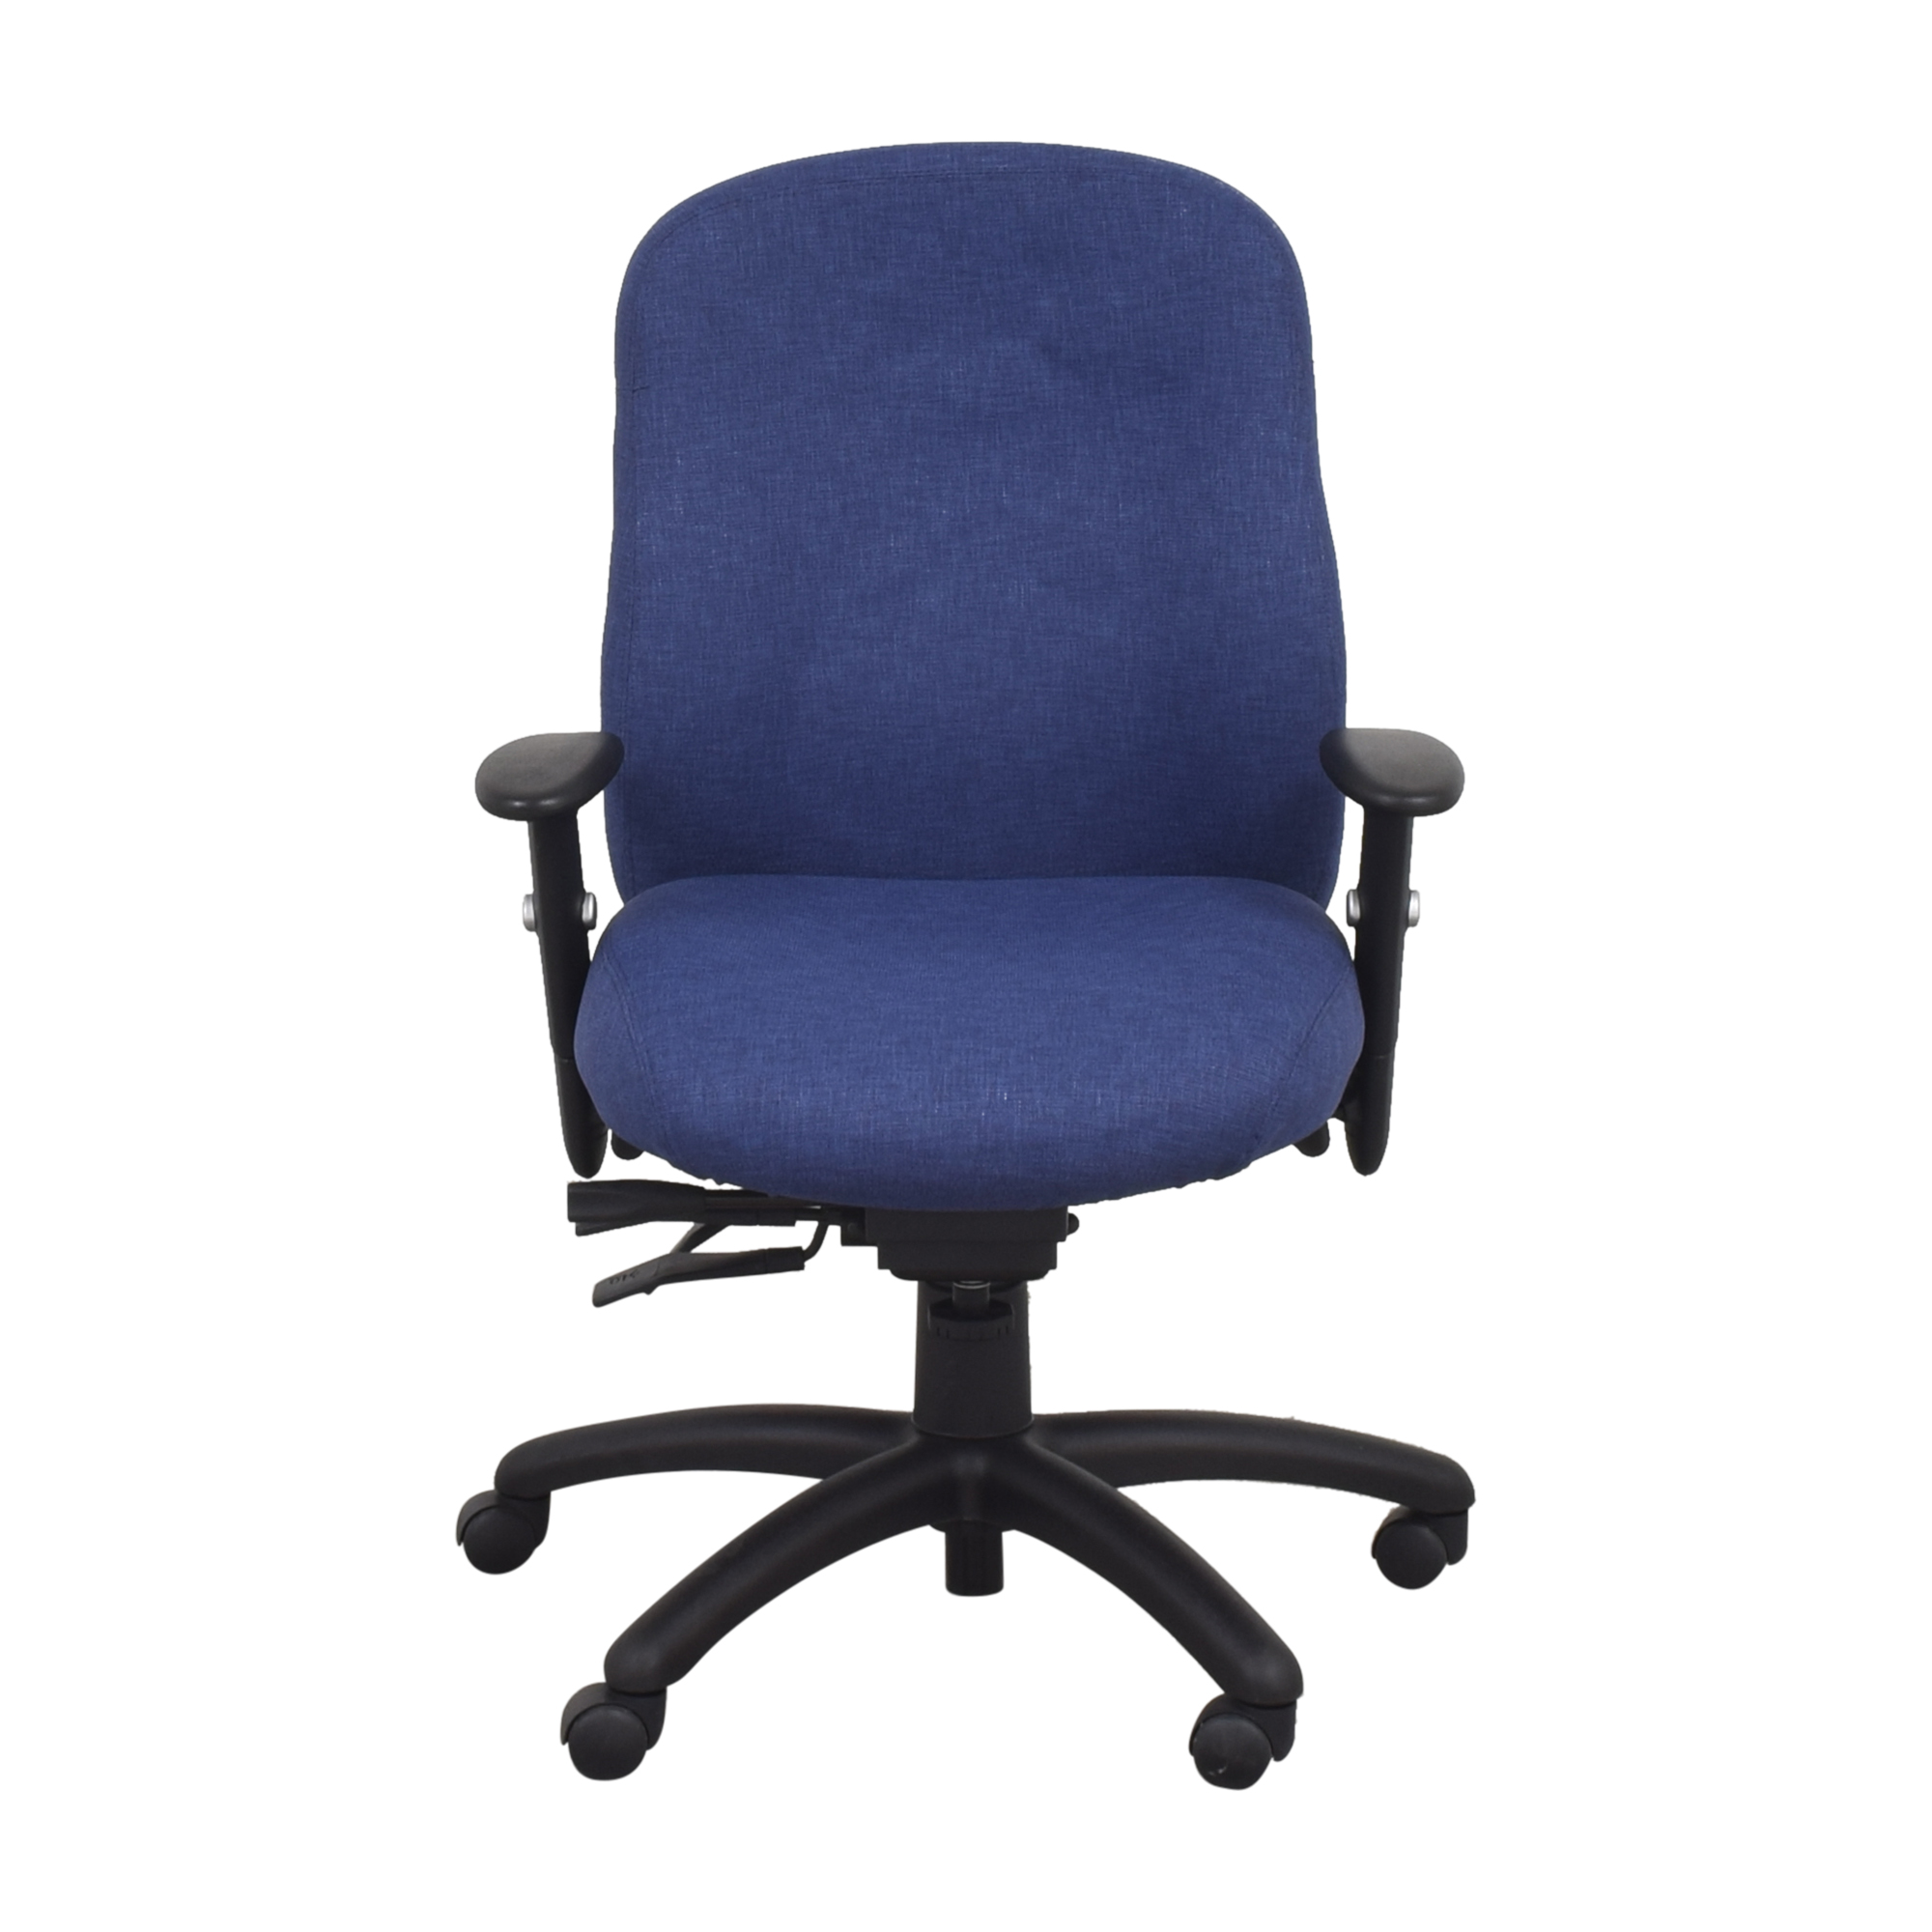 Offices to Go Multi-Function Desk Chair Offices to Go